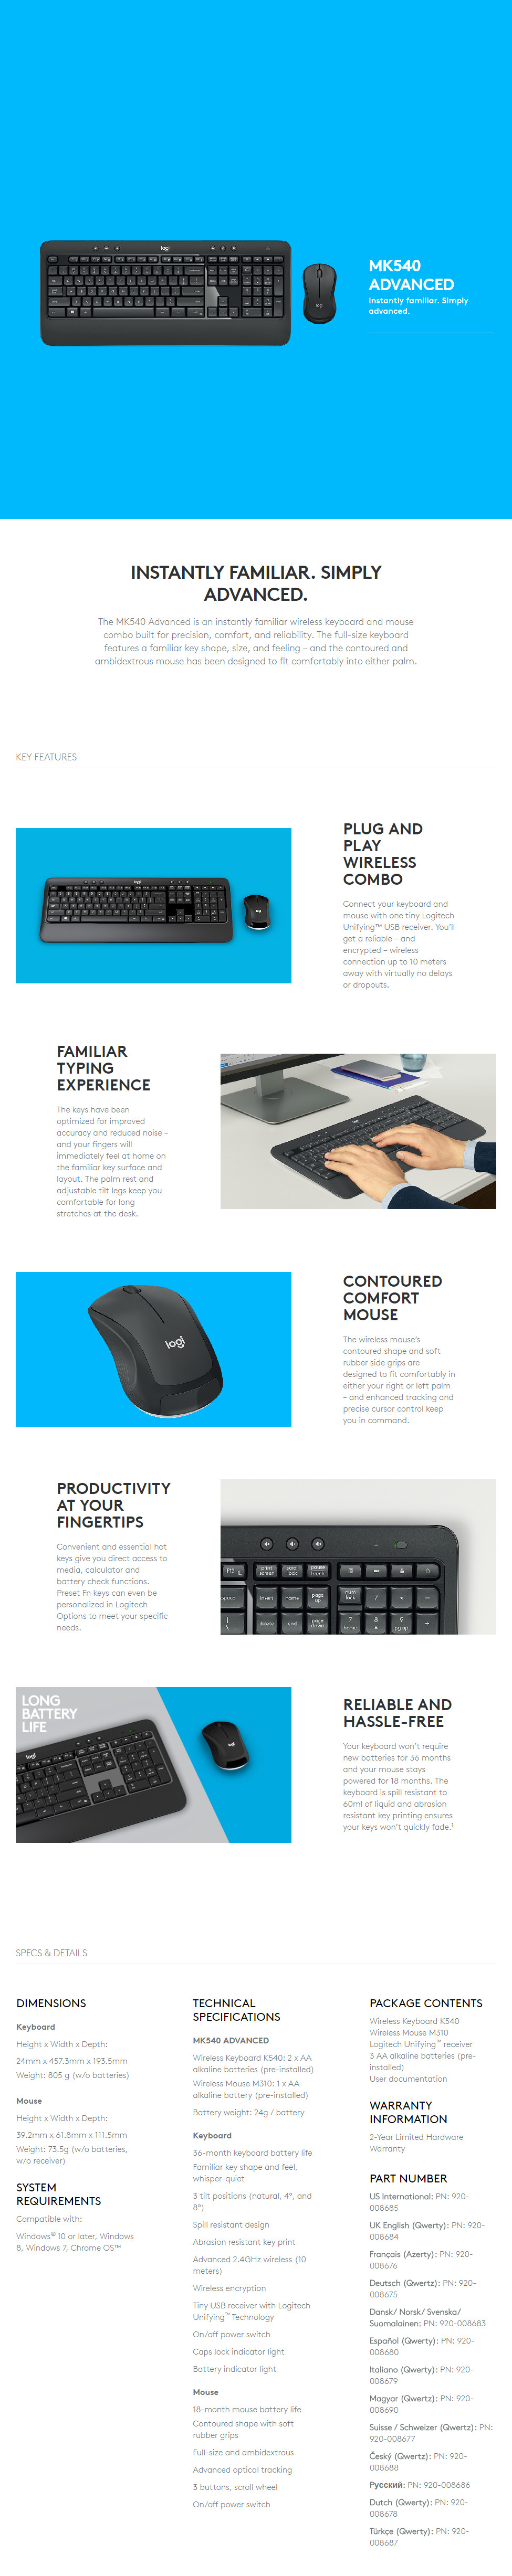 logitech mk540 advanced wireless keyboard and mouse combo 920 008693 buy best price global. Black Bedroom Furniture Sets. Home Design Ideas